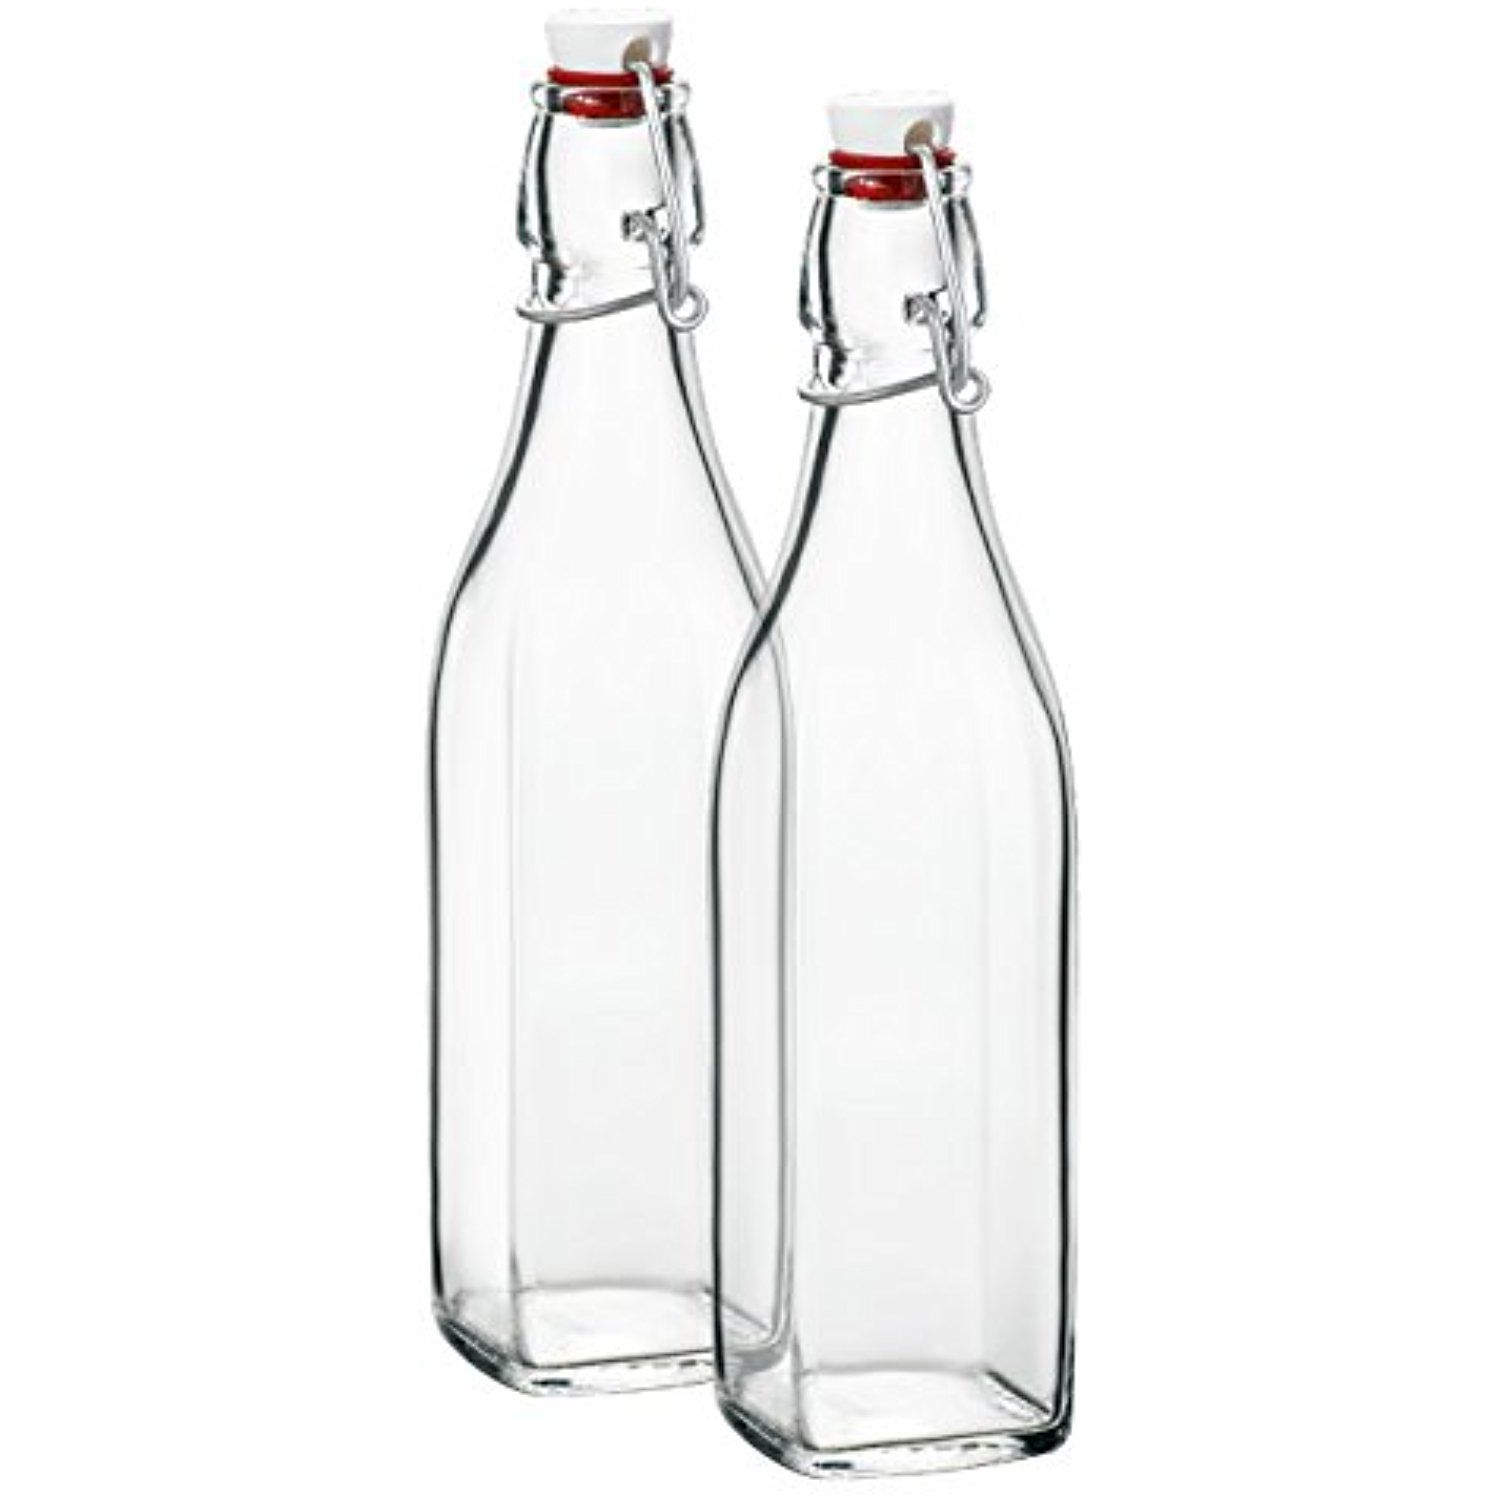 Klikel Conway Square Glass Water Bottles Swing Top Clear Glass Multi Purpose Bottles 1 Liter 33 8oz Set Of 2 Glass Water Bottle Square Glass Glass Bottles